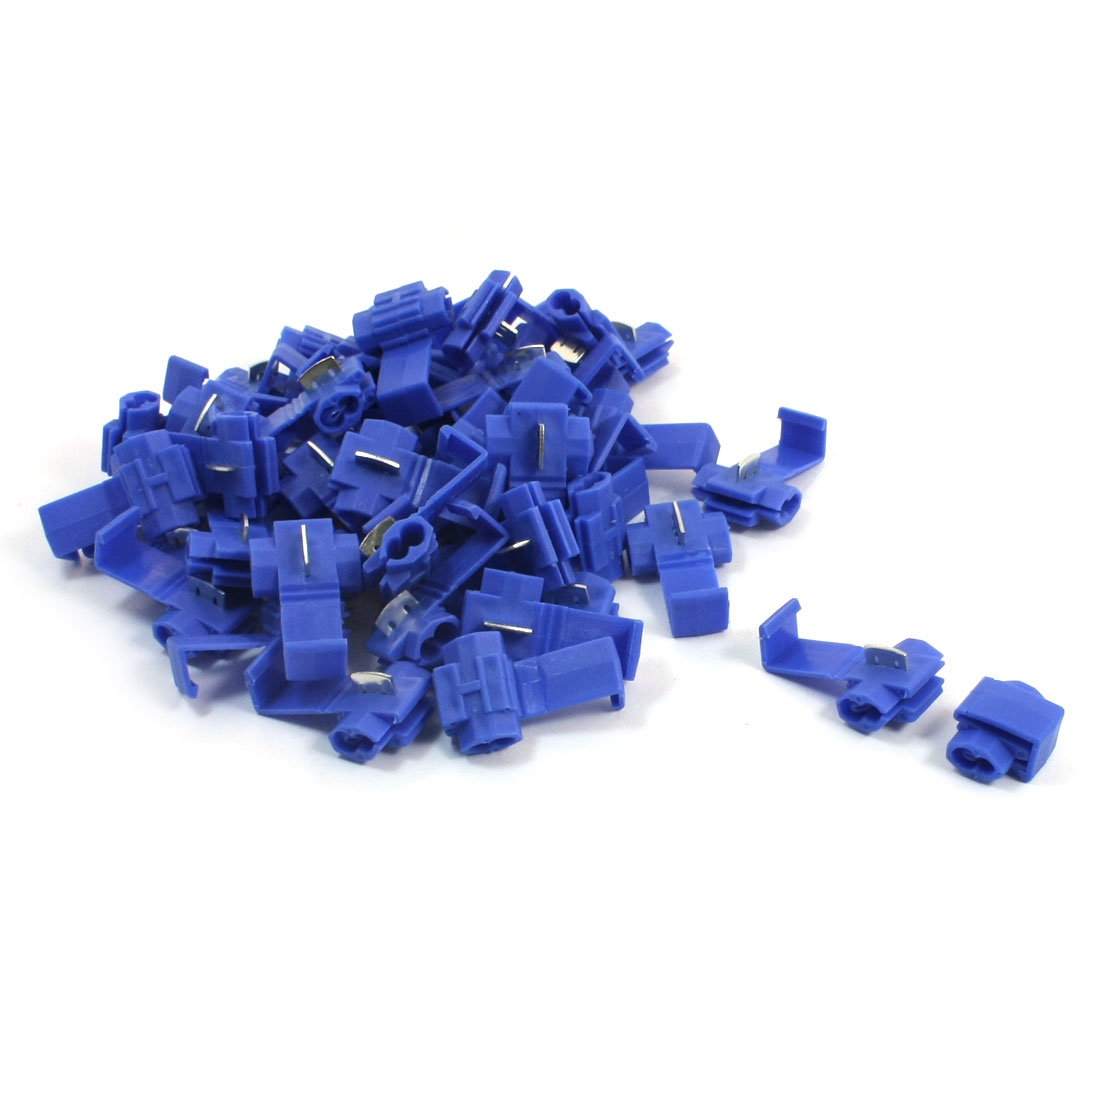 50Pcs 15A 18-14AWG Dual Slots Blue Plastic Insulated Quick Wire Connector Terminal Cable Crimp Adapter 50 Pcs